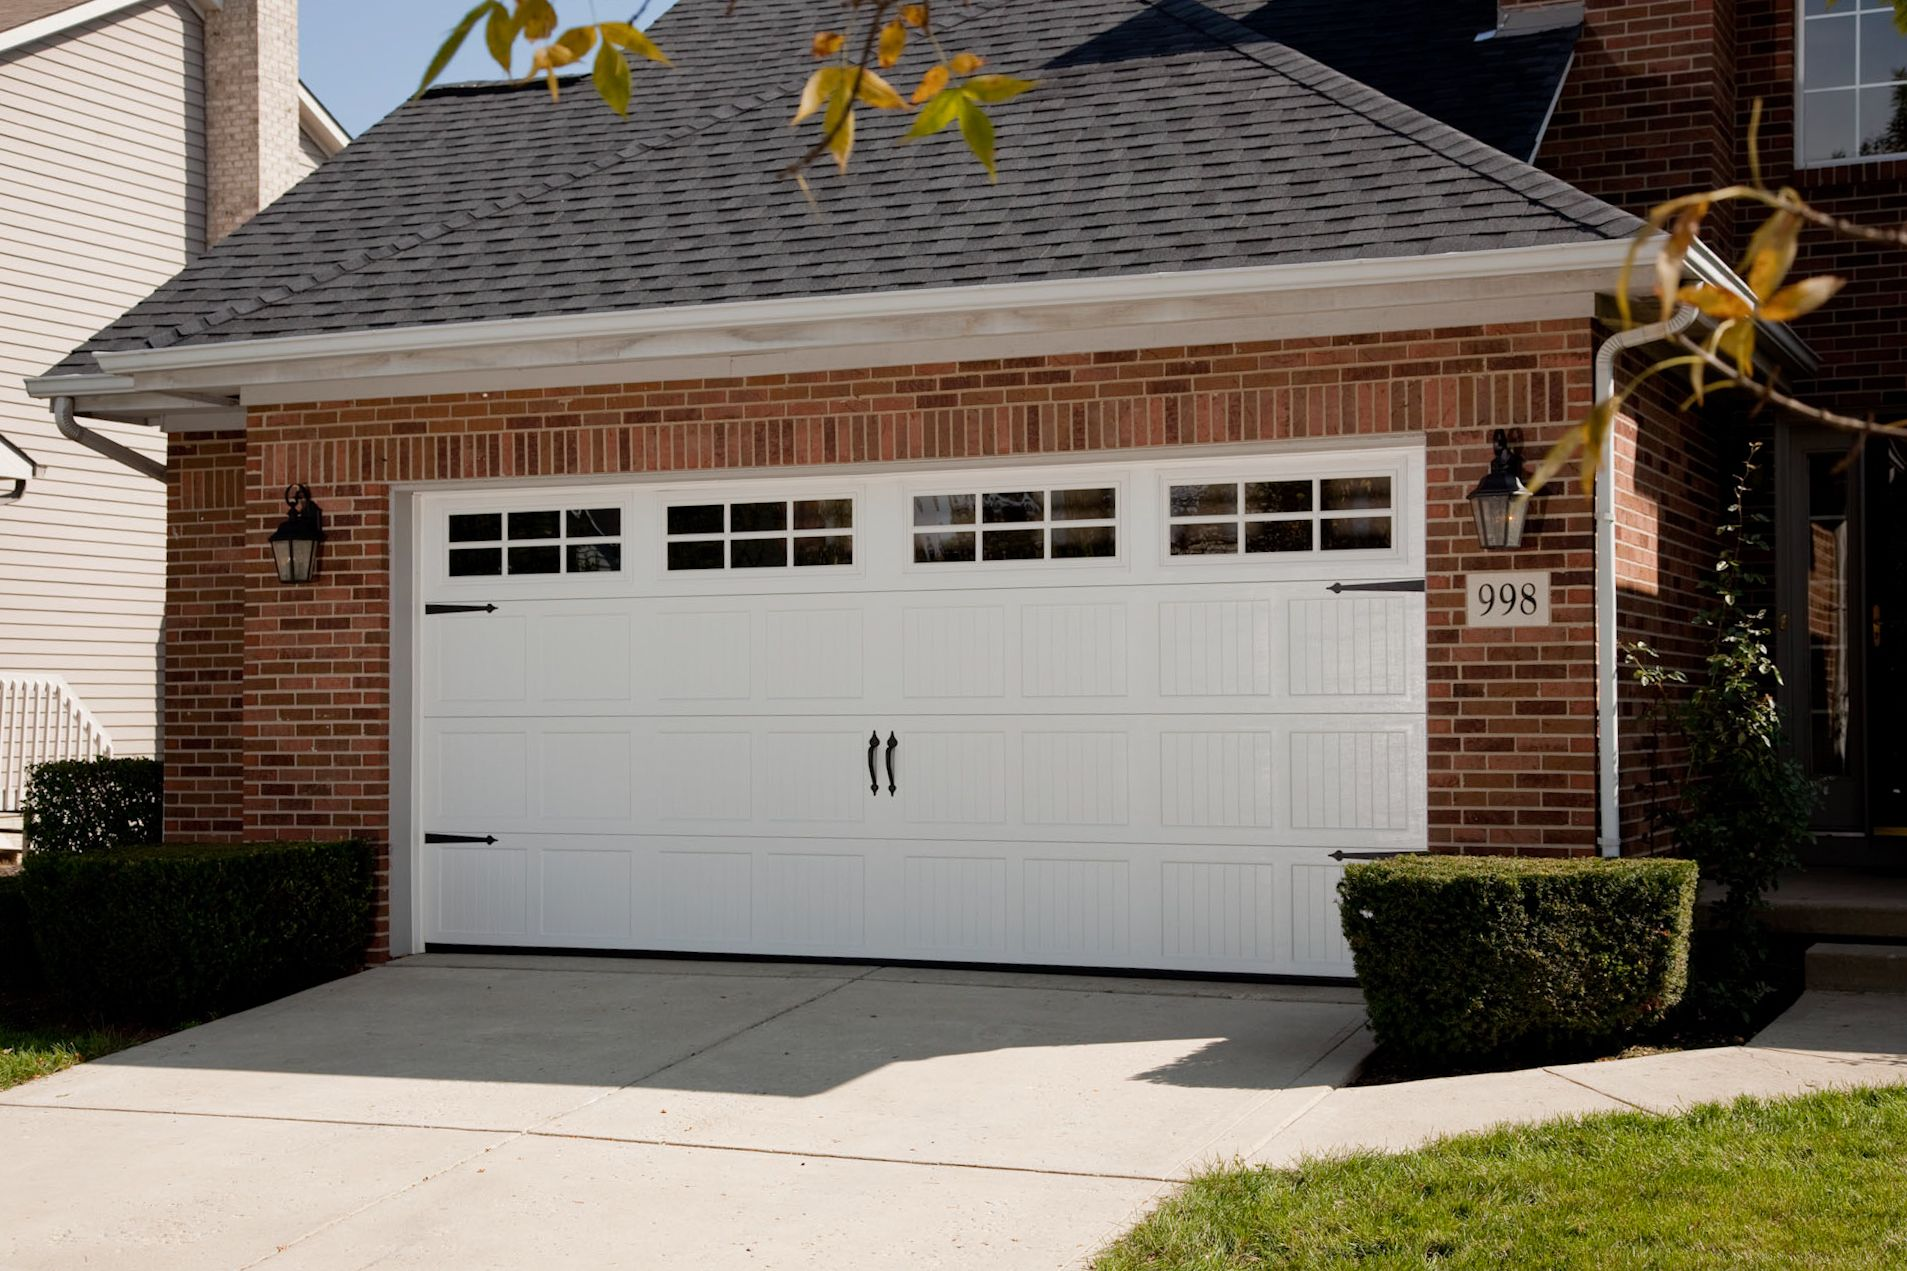 Carriage double garage door - Here Is The Windermere Door On A House With Our Colouring Althought It Is A Carriage Style Garage Doorscarriage Doorsdouble